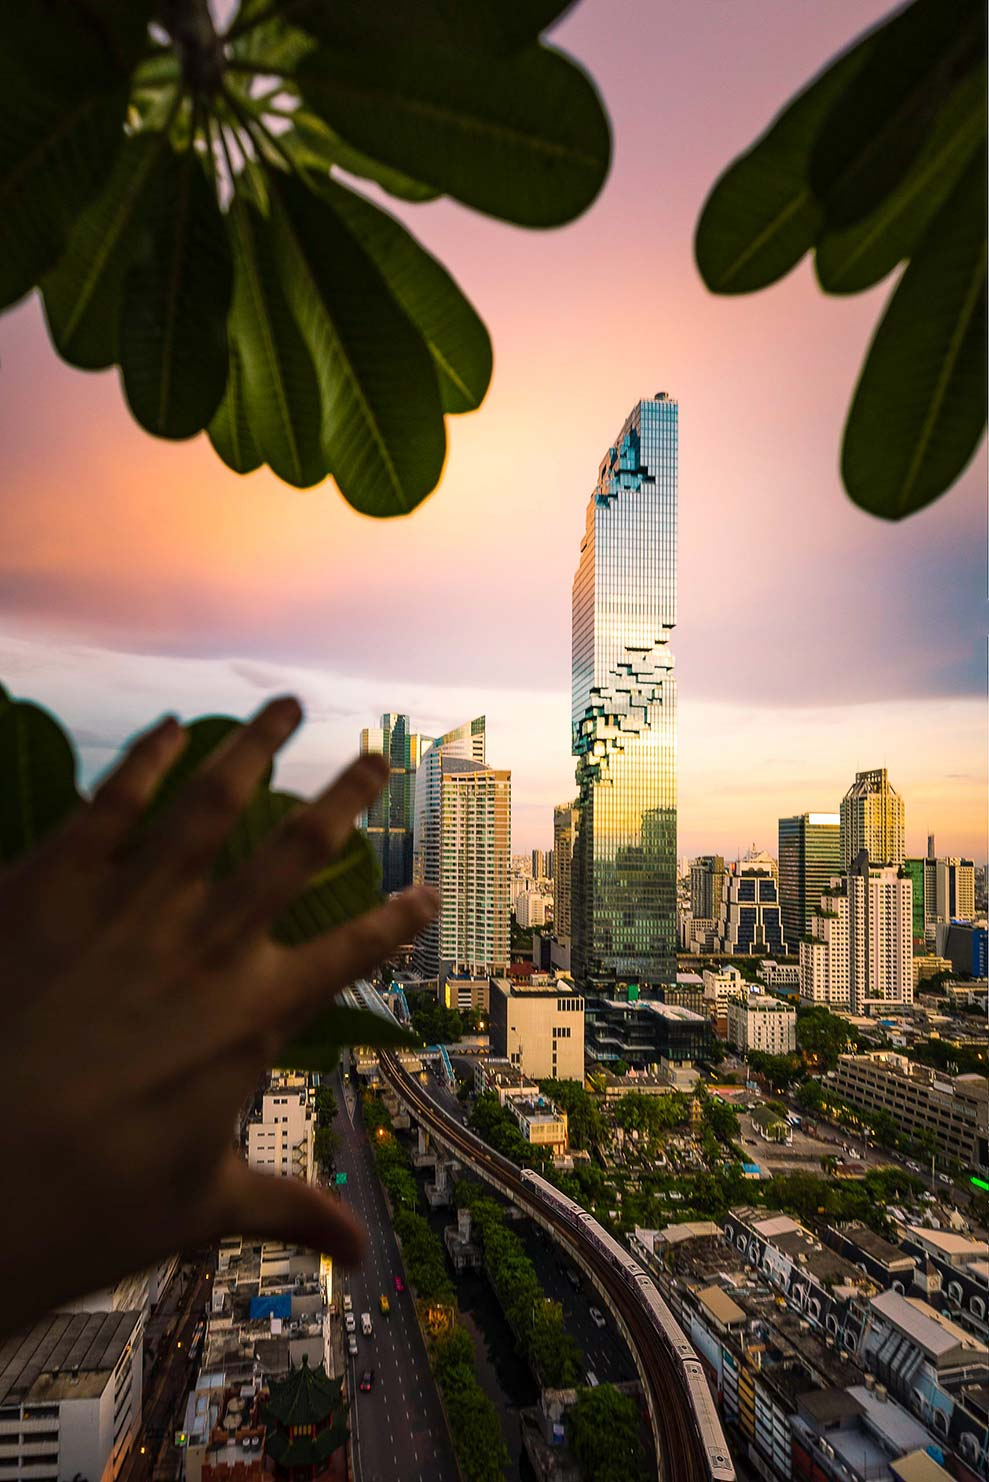 Can foreigners take out a mortgage to purchase a condo in Thailand?